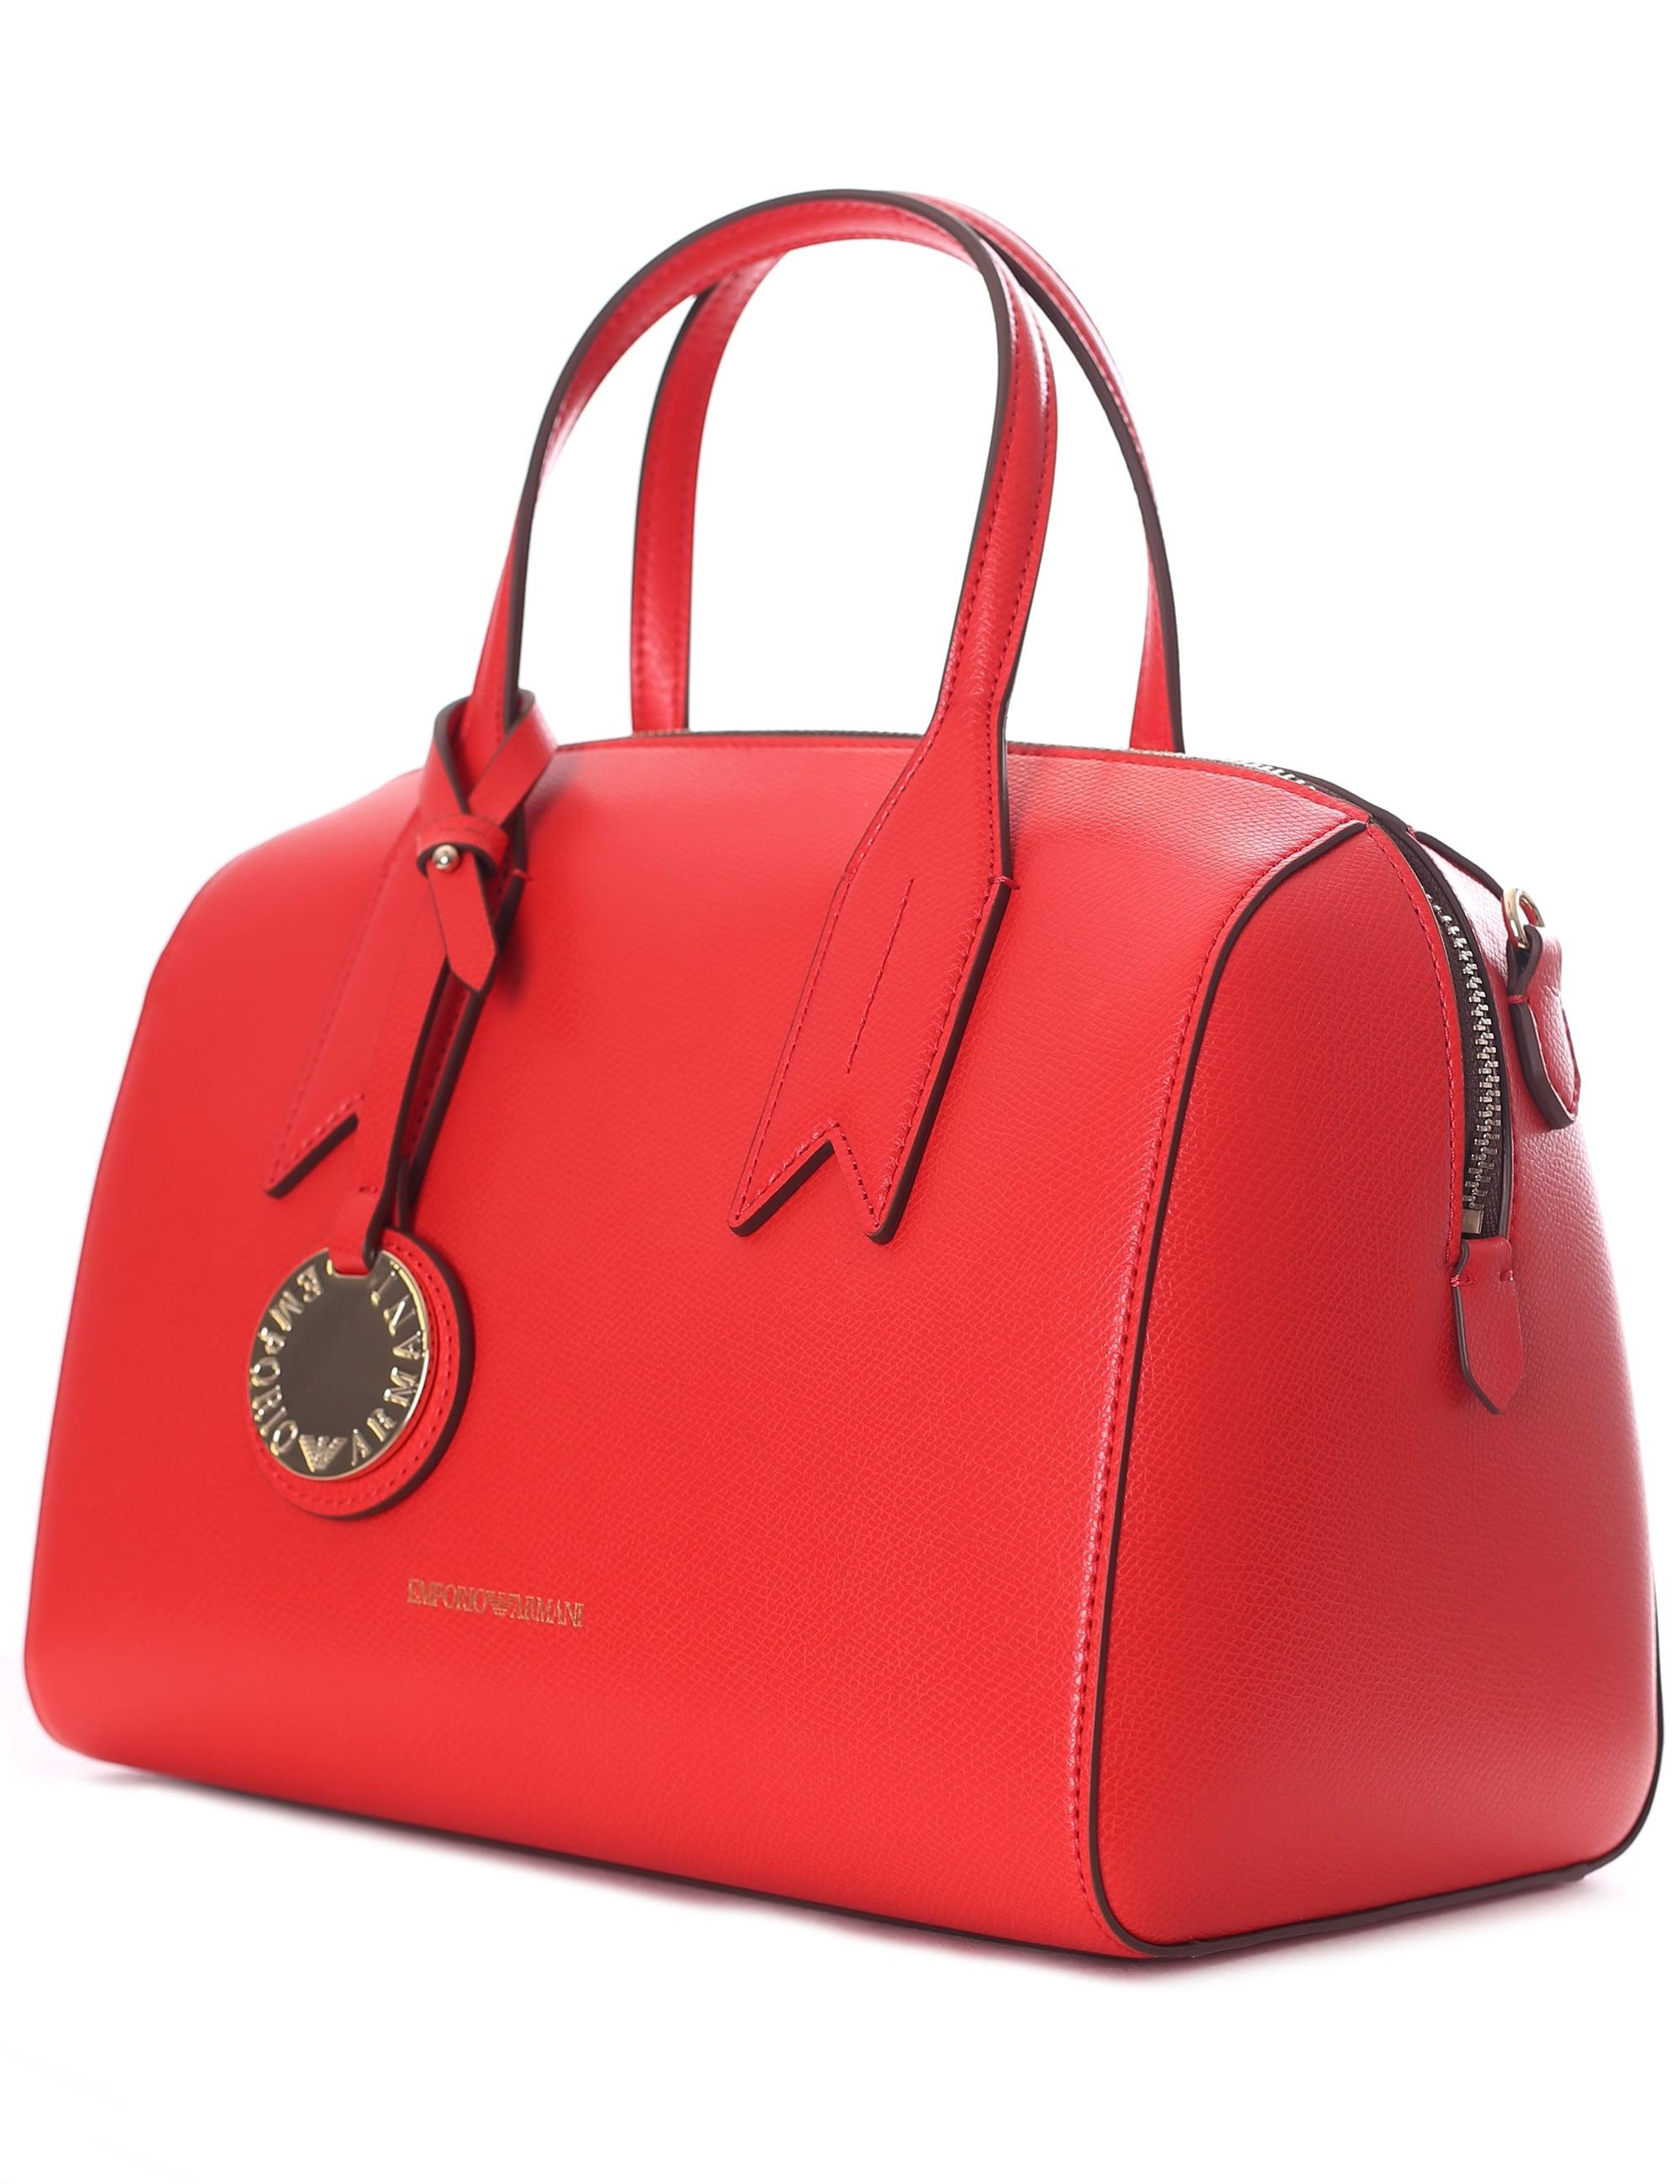 Previously sold at Diffusion · Womens Bowling Bags ... super popular 2a2f4  . ... 14b7b7d8f91e7